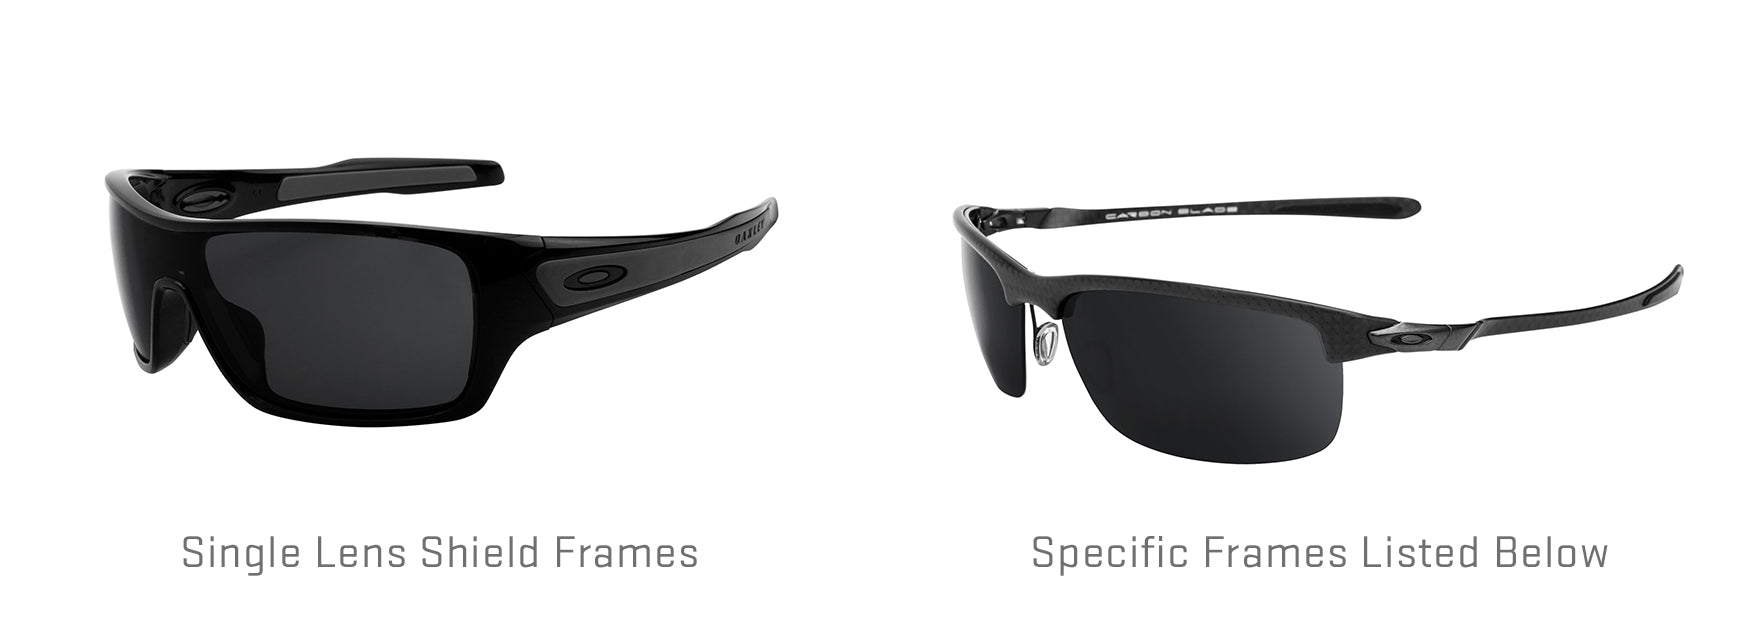 Shield frames and other specific frames listed below